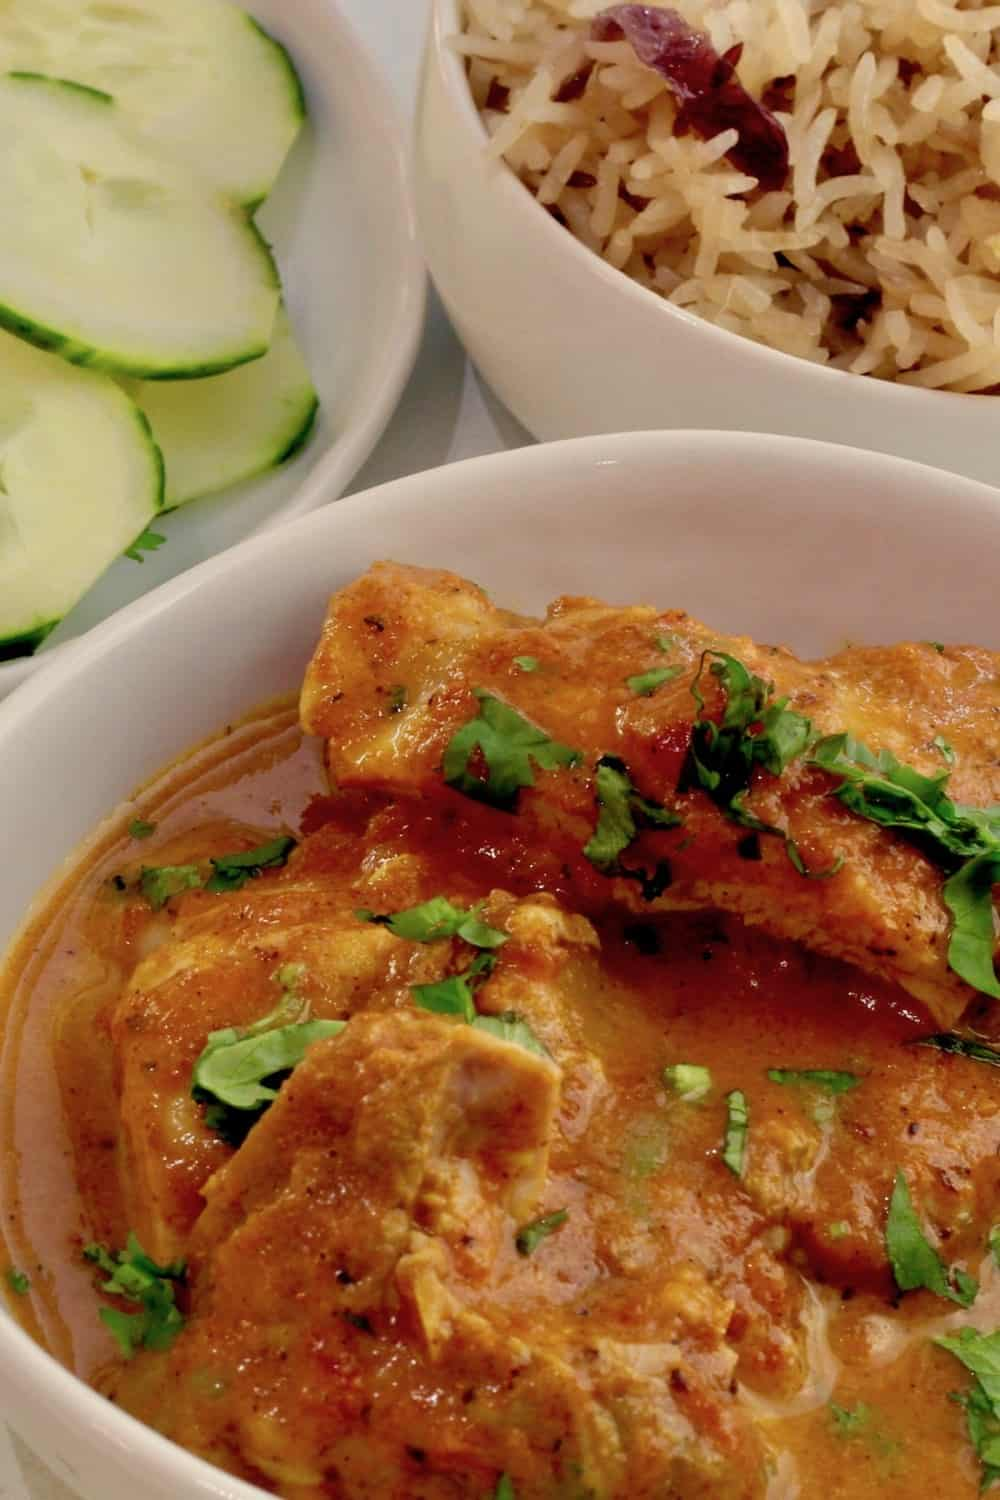 Make Butter Chicken with your Instant Pot. Check out these simple Instant Pot recipes to get started cooking with your new Instant Pot. #InstantPotRecipes